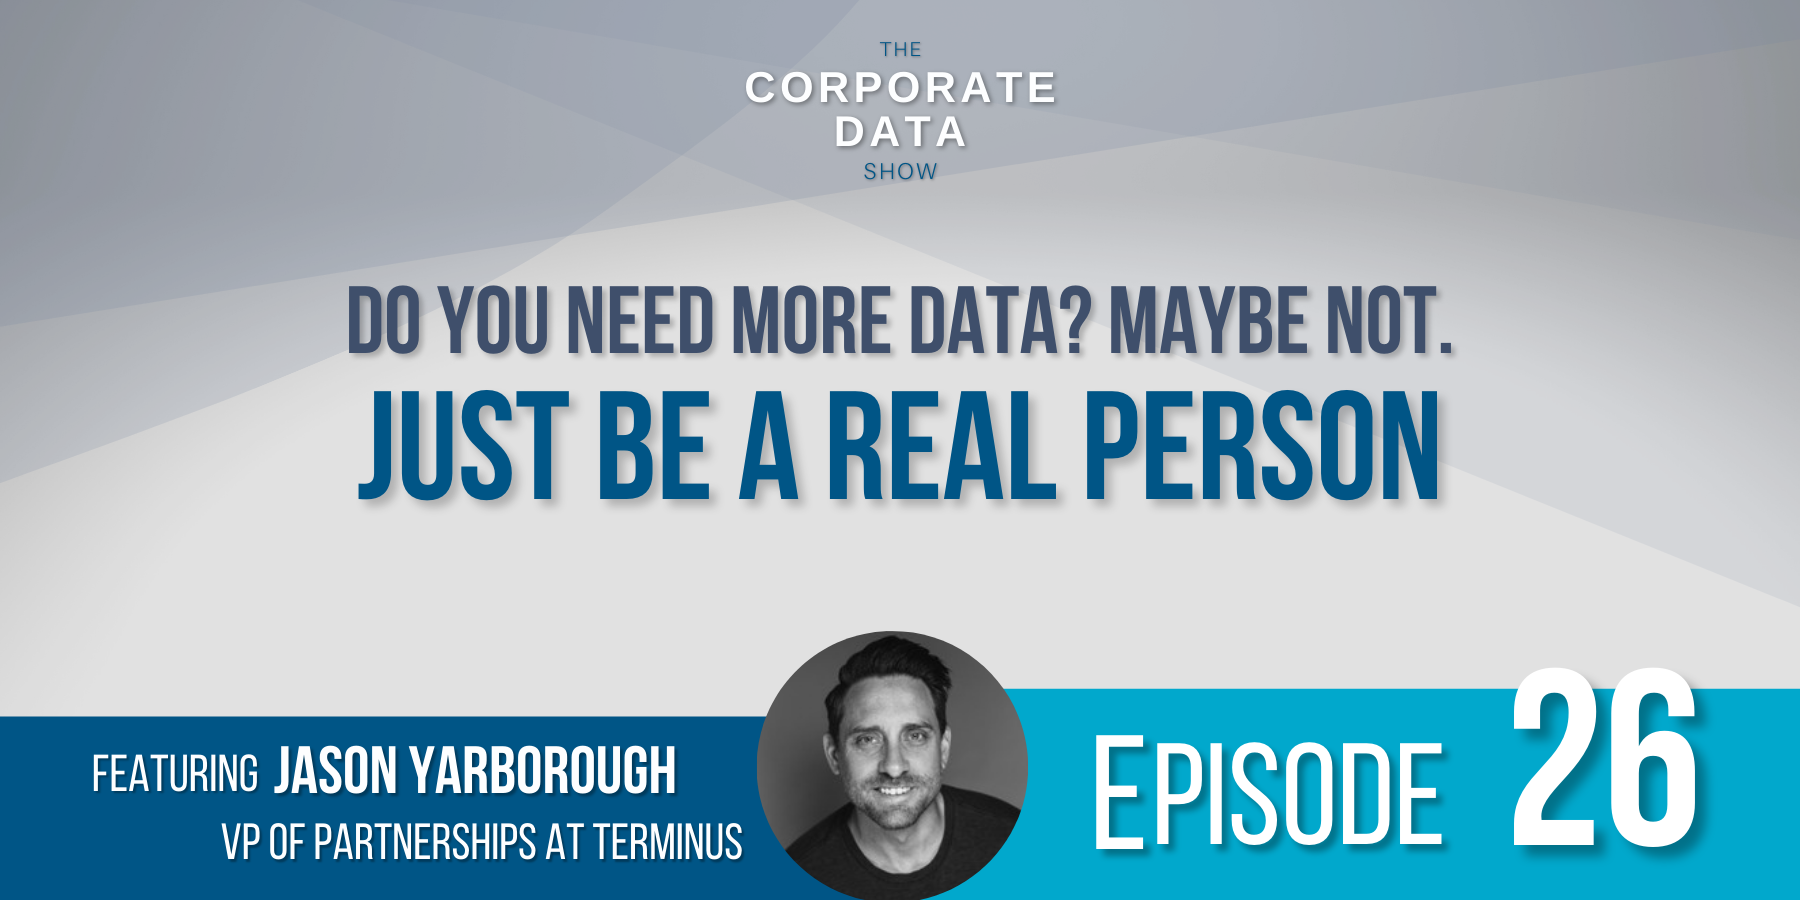 Do you need more data? With Jason Yarborough